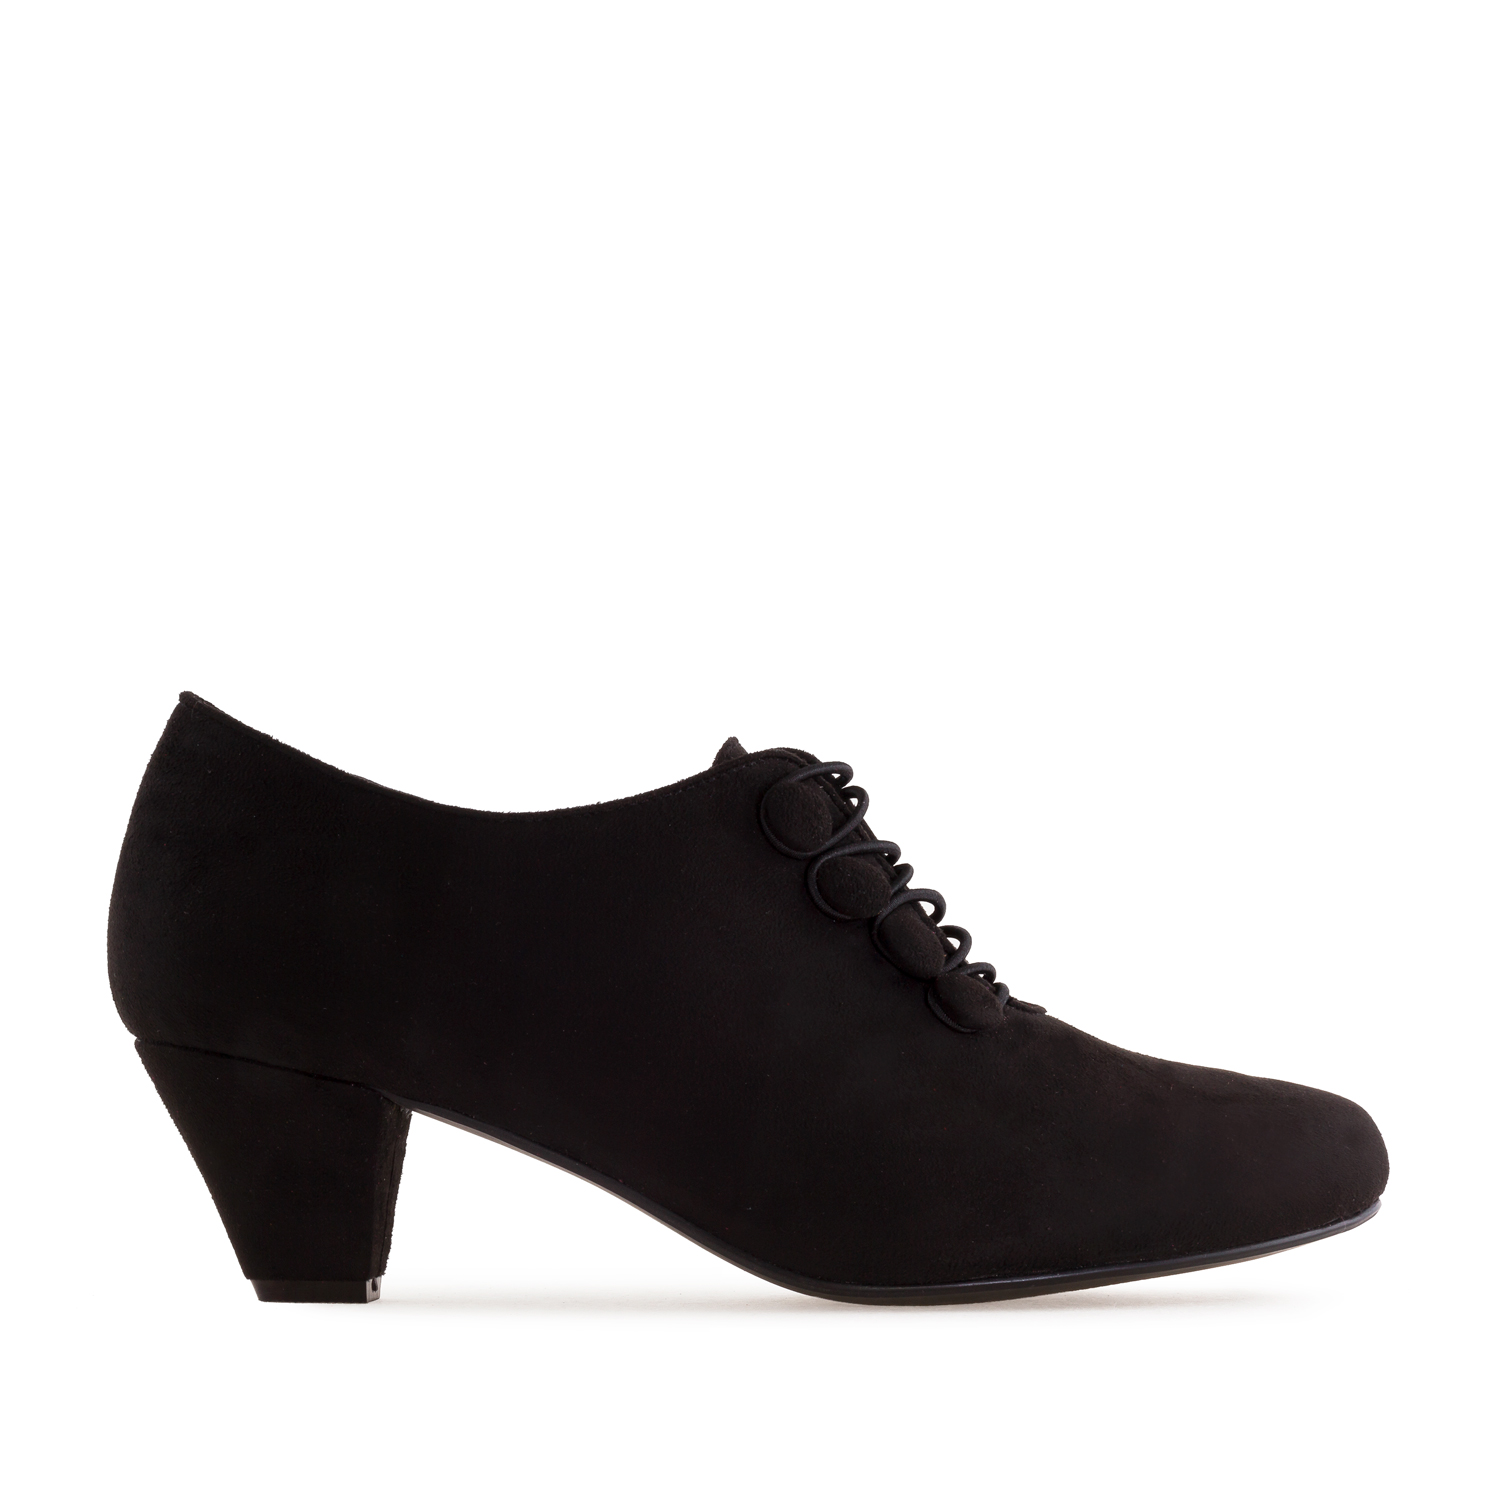 Button-Up Shoes in Black Suede